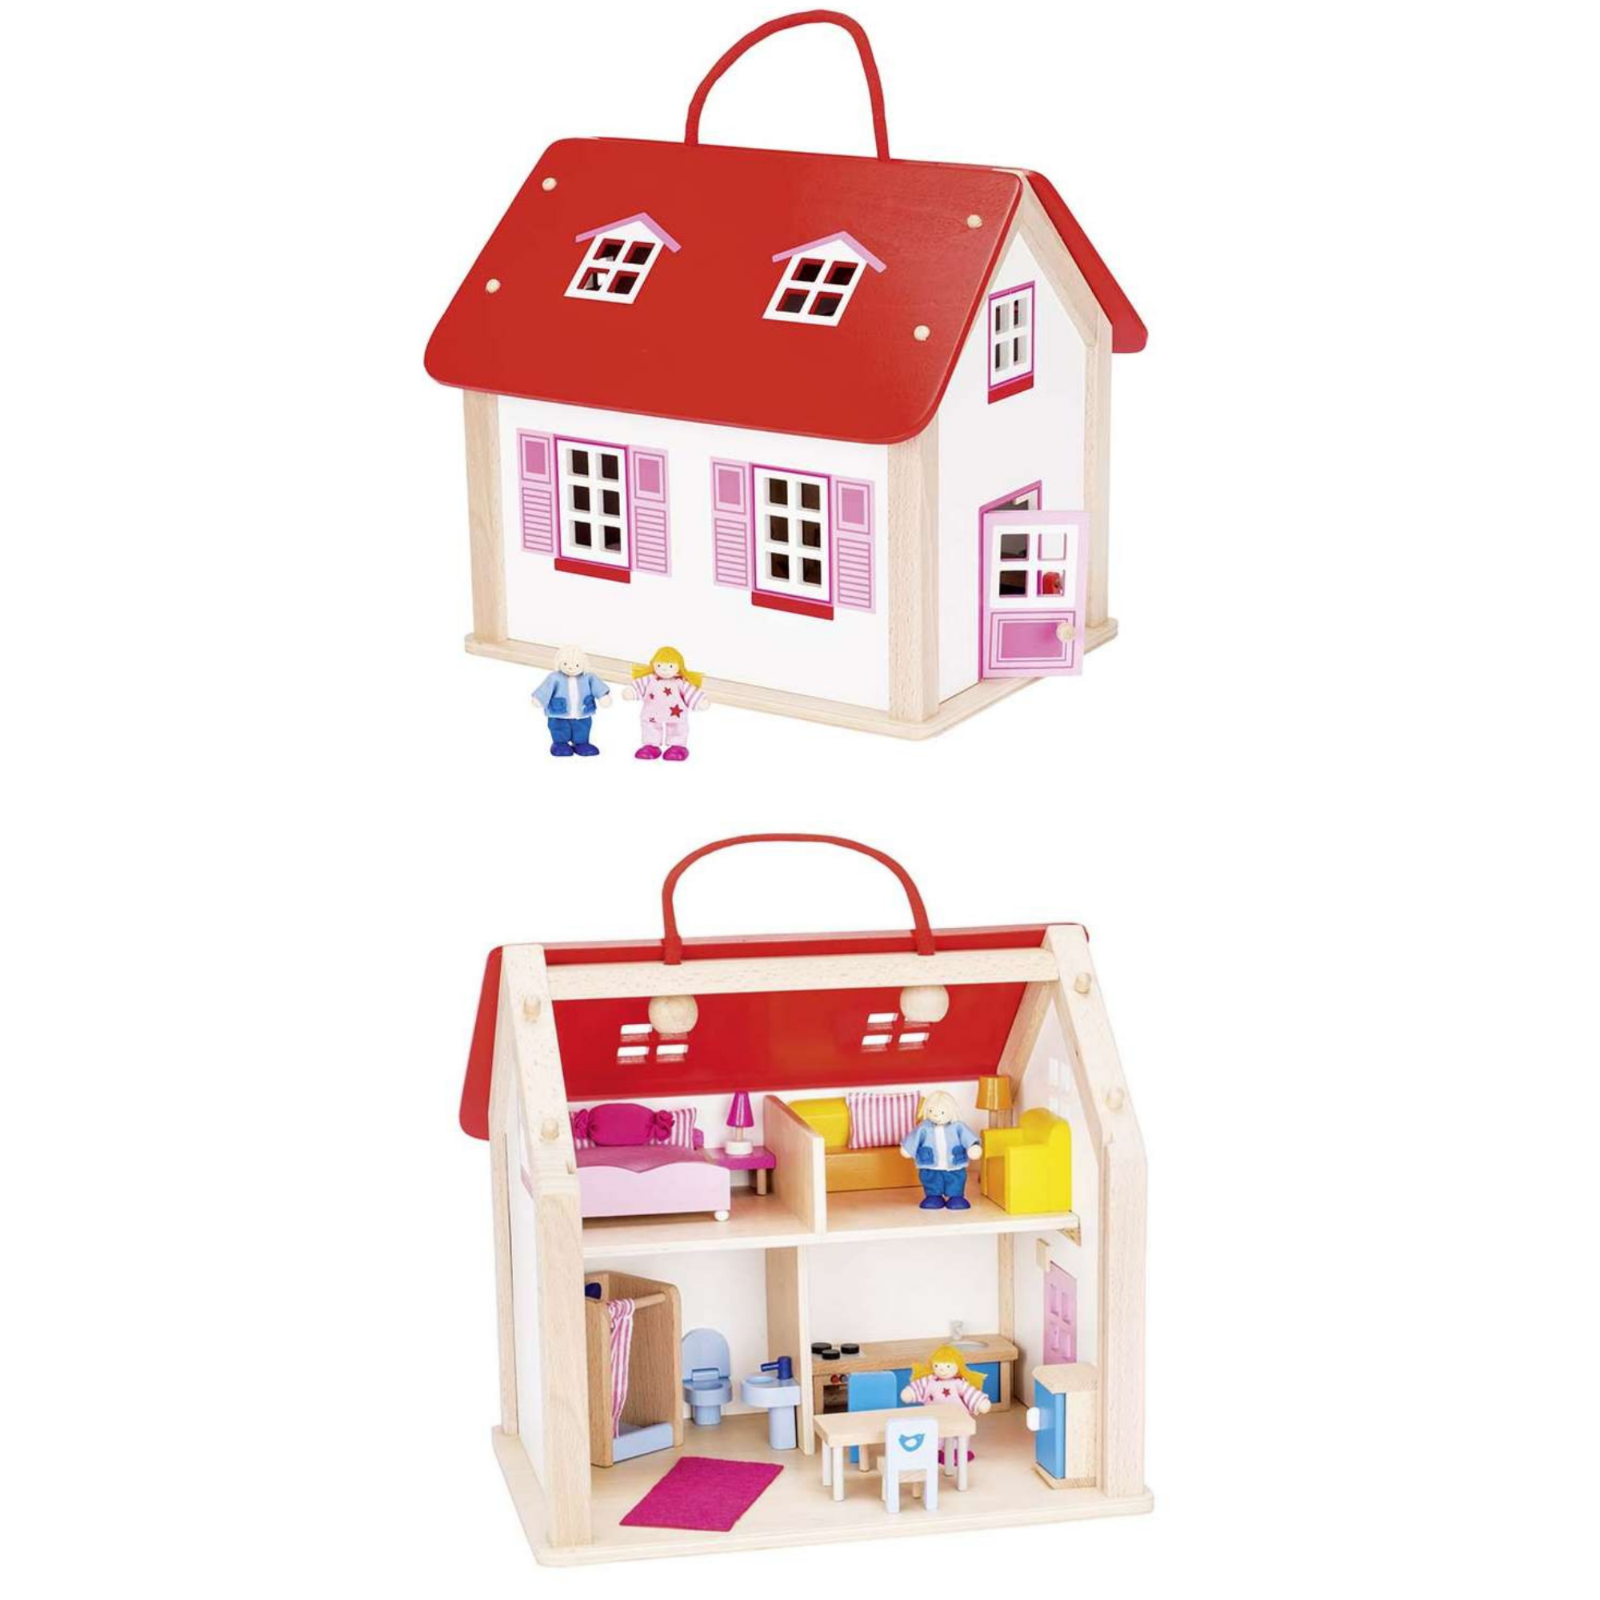 Goki Suitcase Wooden Dolls House With Accessories Accessories Accessories 24 Pieces And Carry Handle feac06